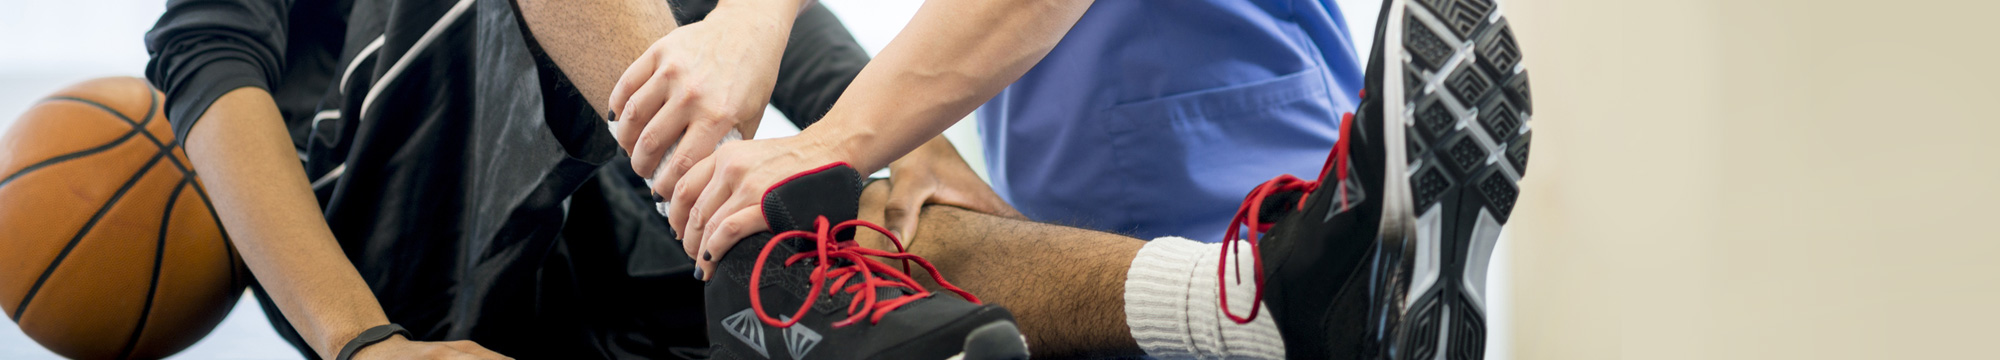 Dr. Murray Butler - Foot and Ankle Surgeon - OrthoOne Sports Medicine